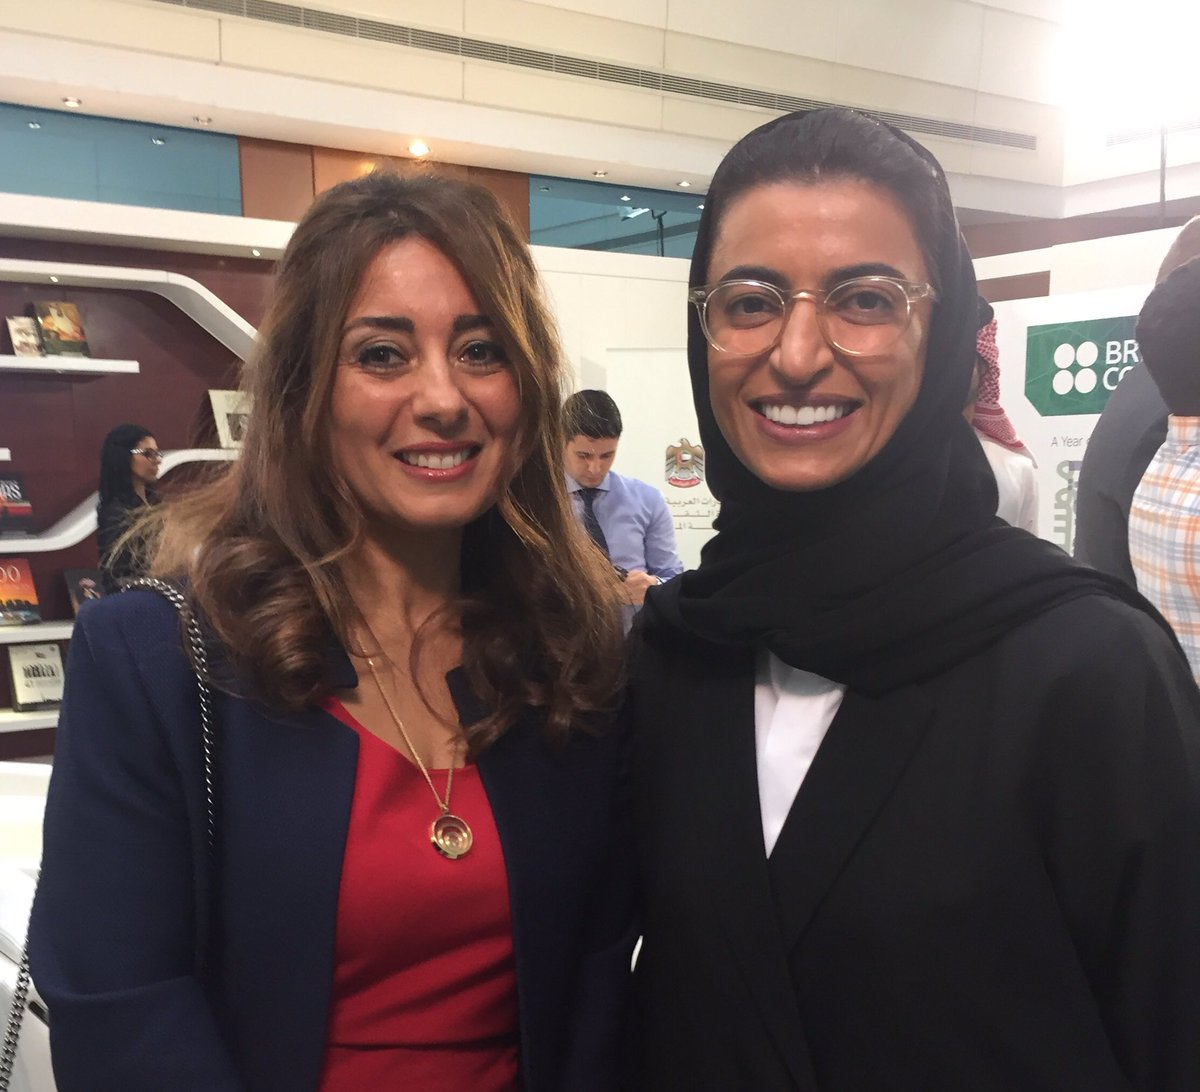 Honoured to meet the new UAE MInister of Culture. Wonderful to see successful women at the top!   @ukinuae @DubaiOpera https://t.co/5MCP39D5O9